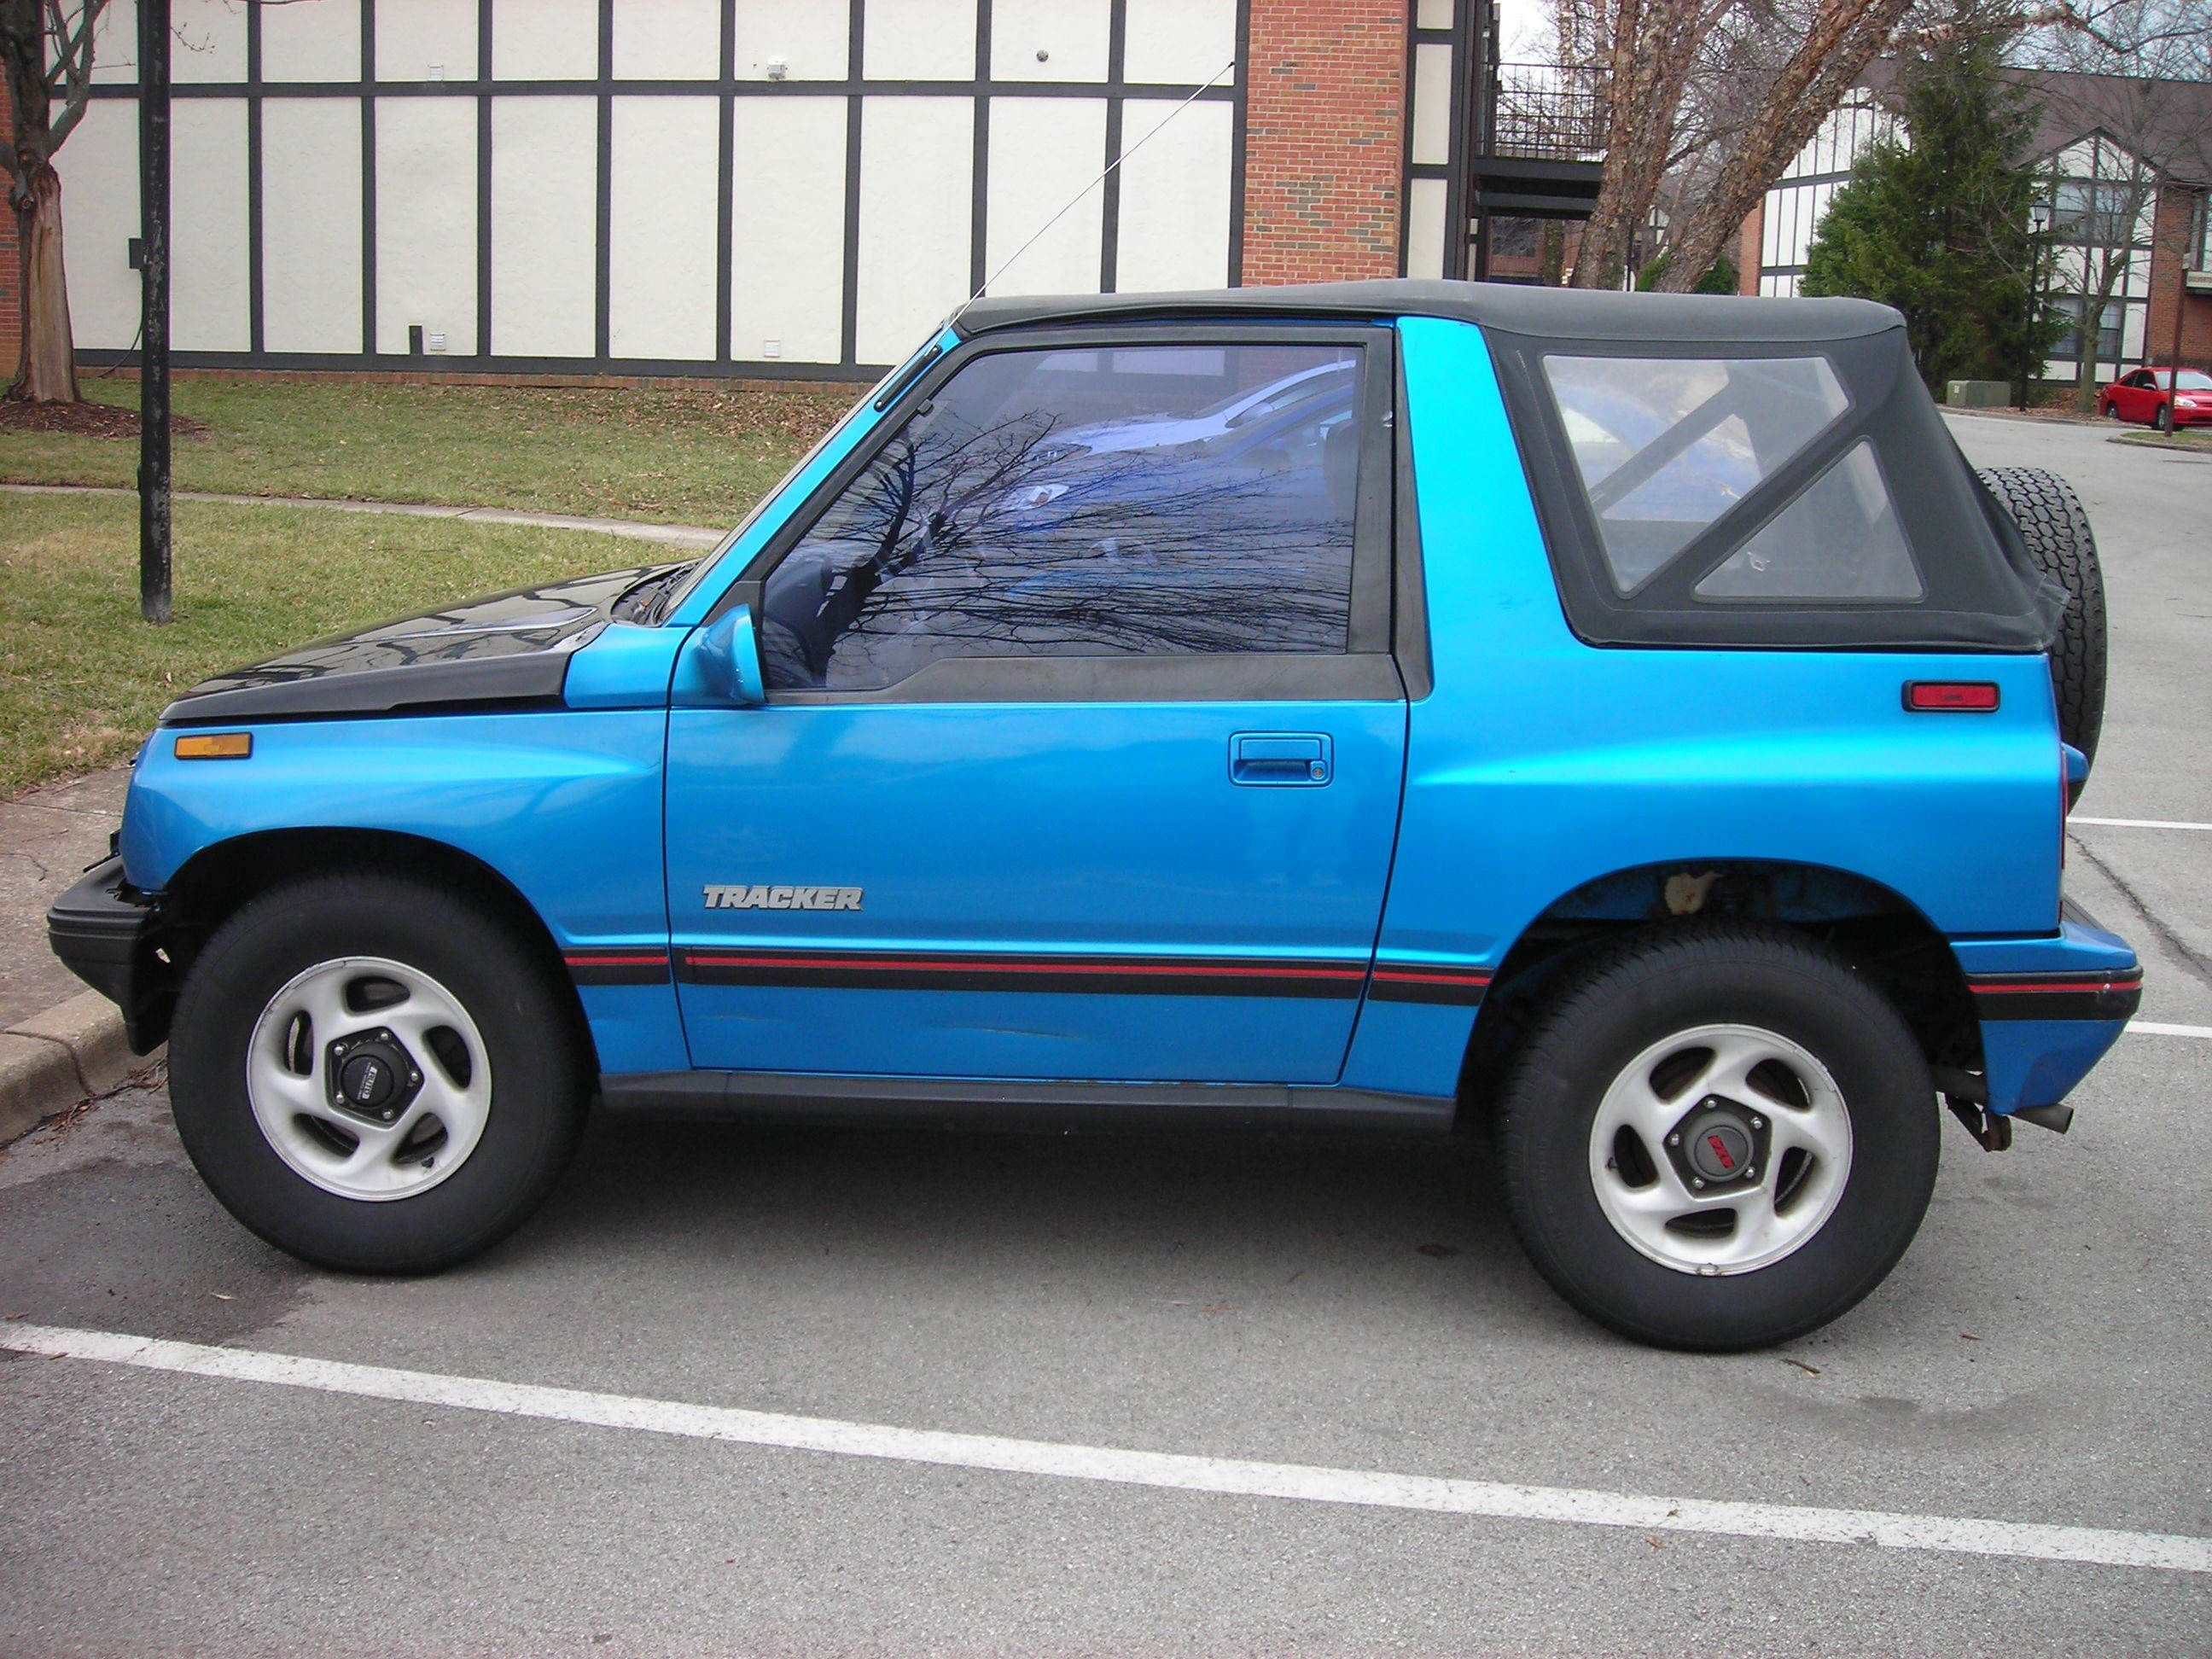 Geo Tracker One Of The Biggest Mistakes I Ever Made Mine Even Had A Pink Swoosh On The Side I Found Out The Neighborhood Kids Dream Cars Cars Trucks Pontiac